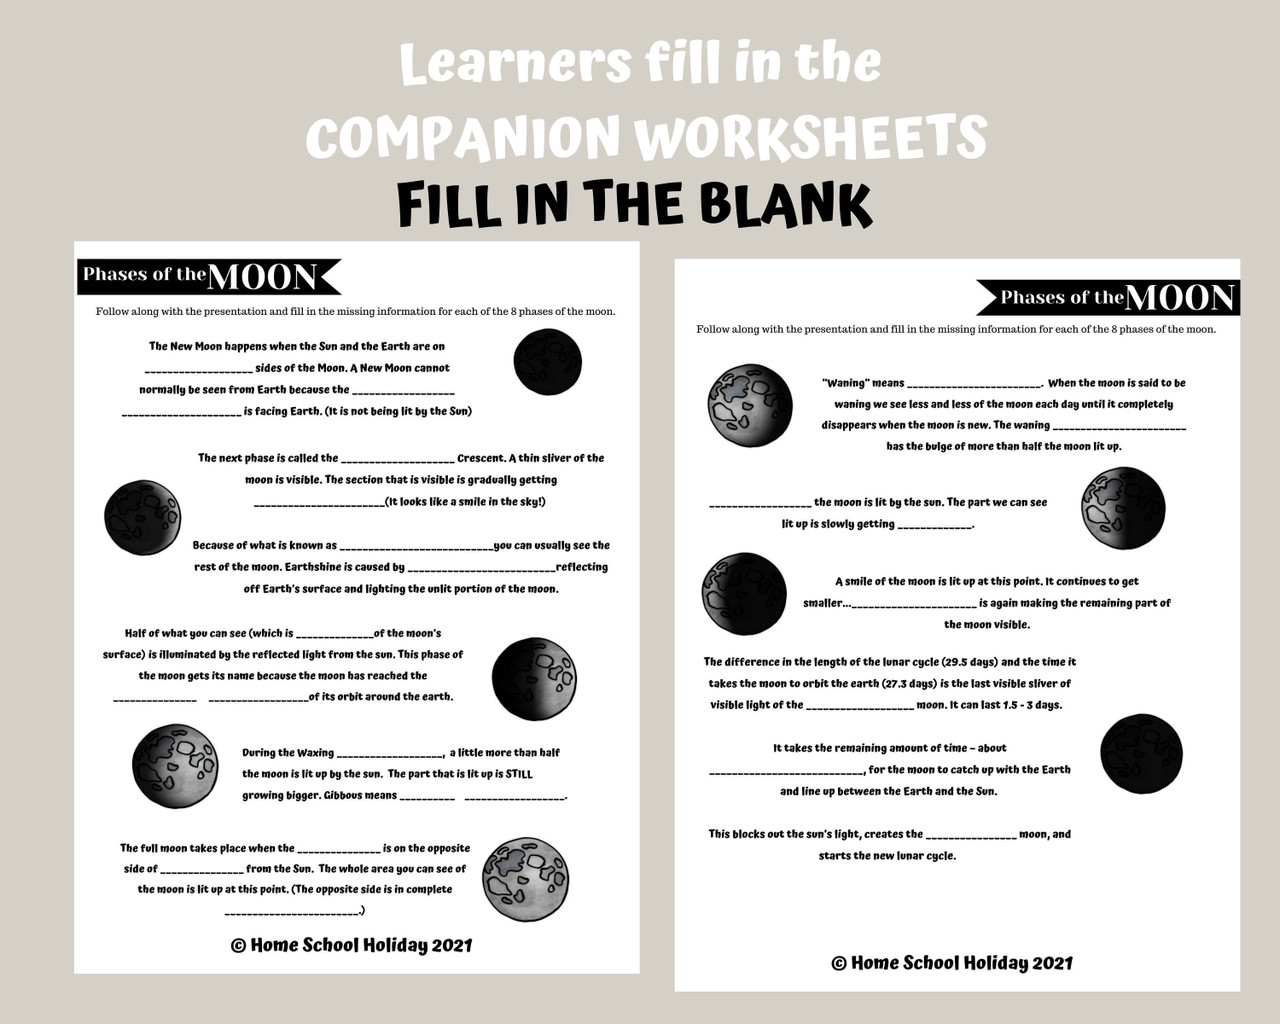 Phases of the Moon worksheets pdf